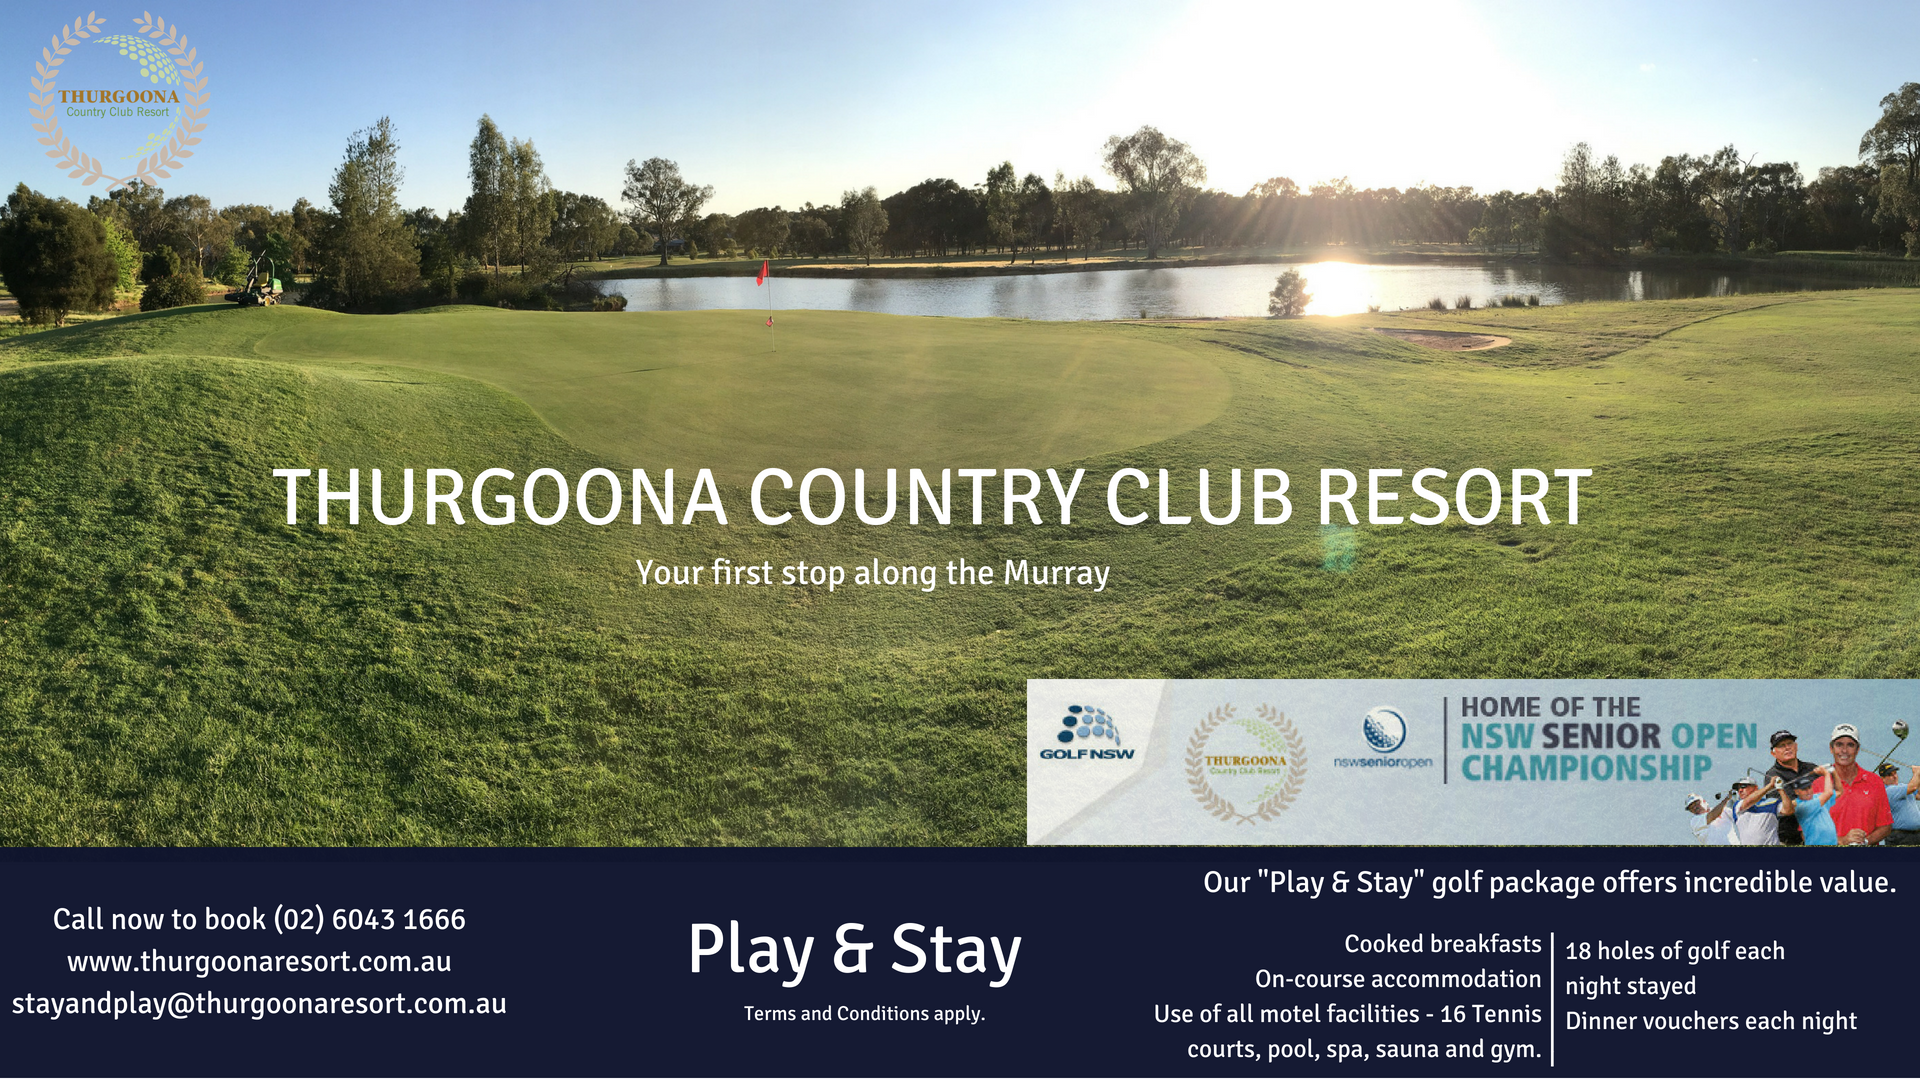 Accommodation Albury, Stay and Play, Stay and Play package, Golf along the Murray, Play and Stay, Stay and Play Murray River